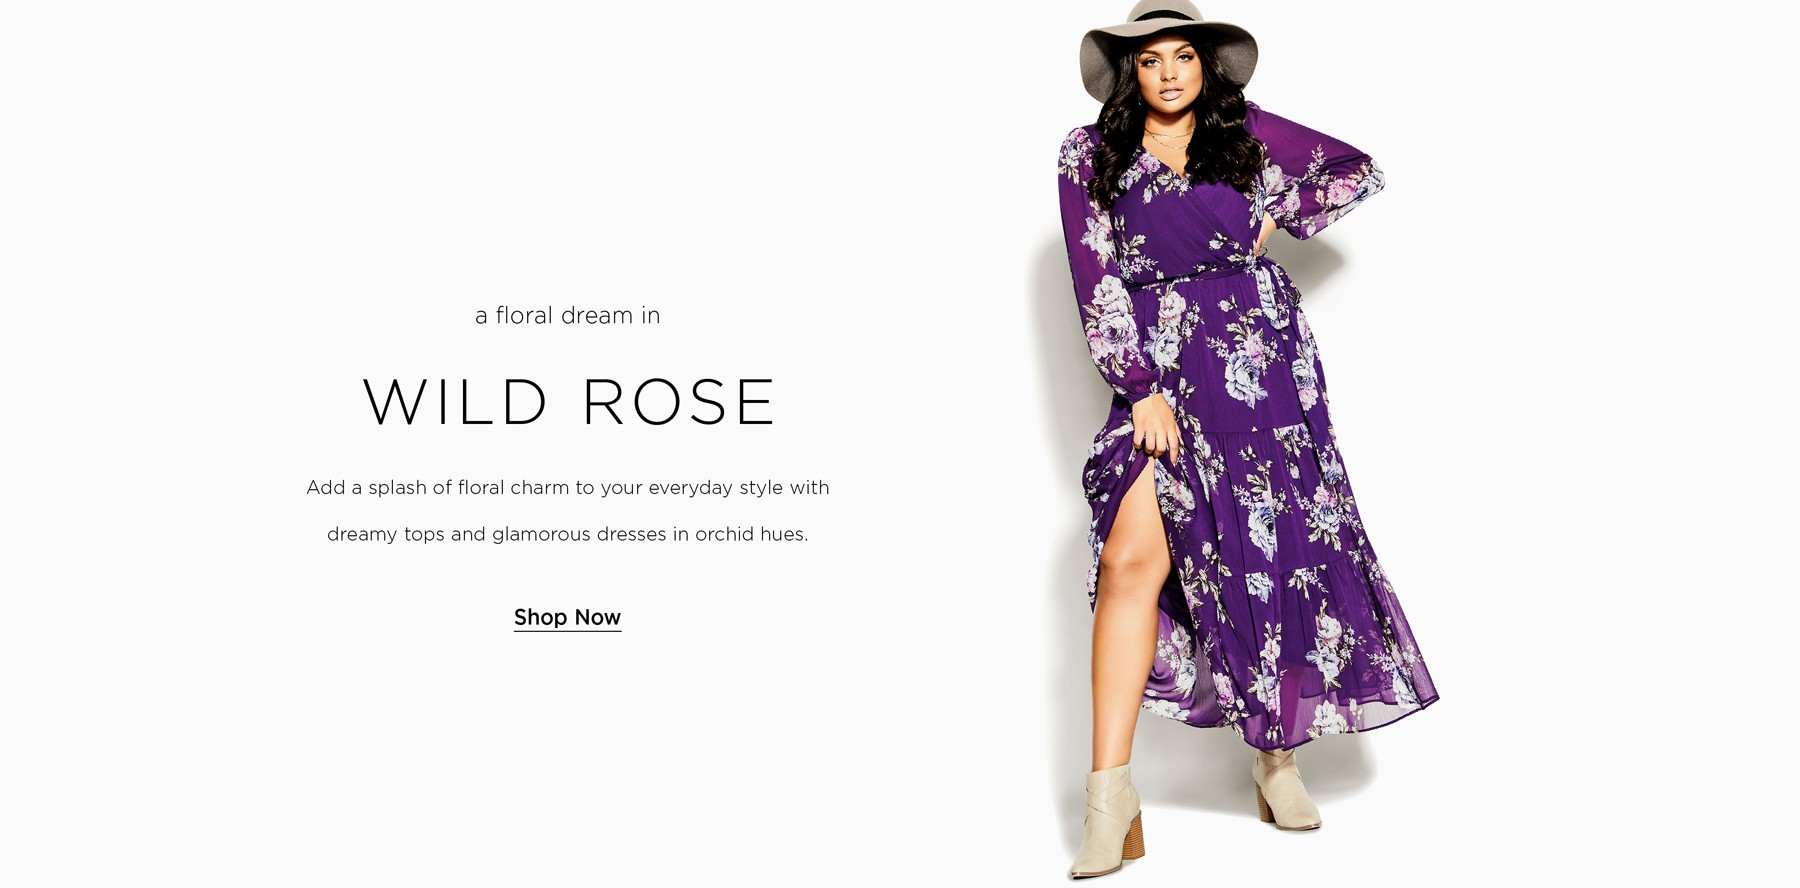 Shop City Chic Wild Rose New Collection